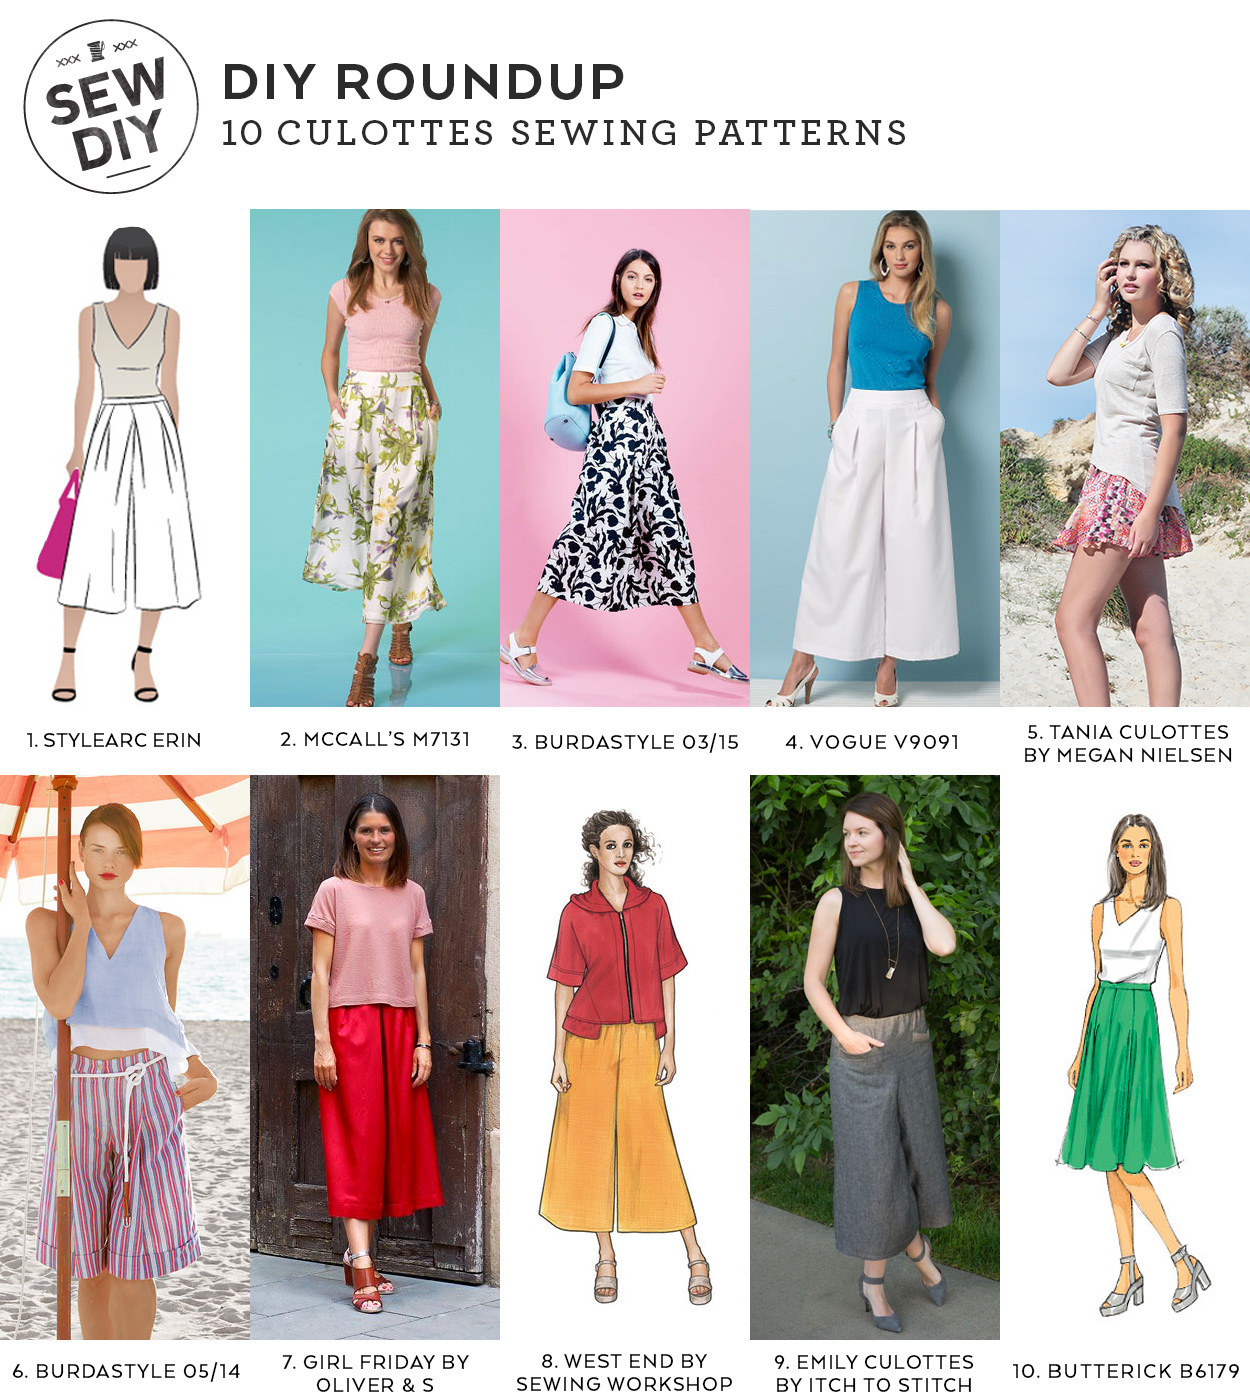 10 Culottes Sewing Patterns Roundup | Sew DIY